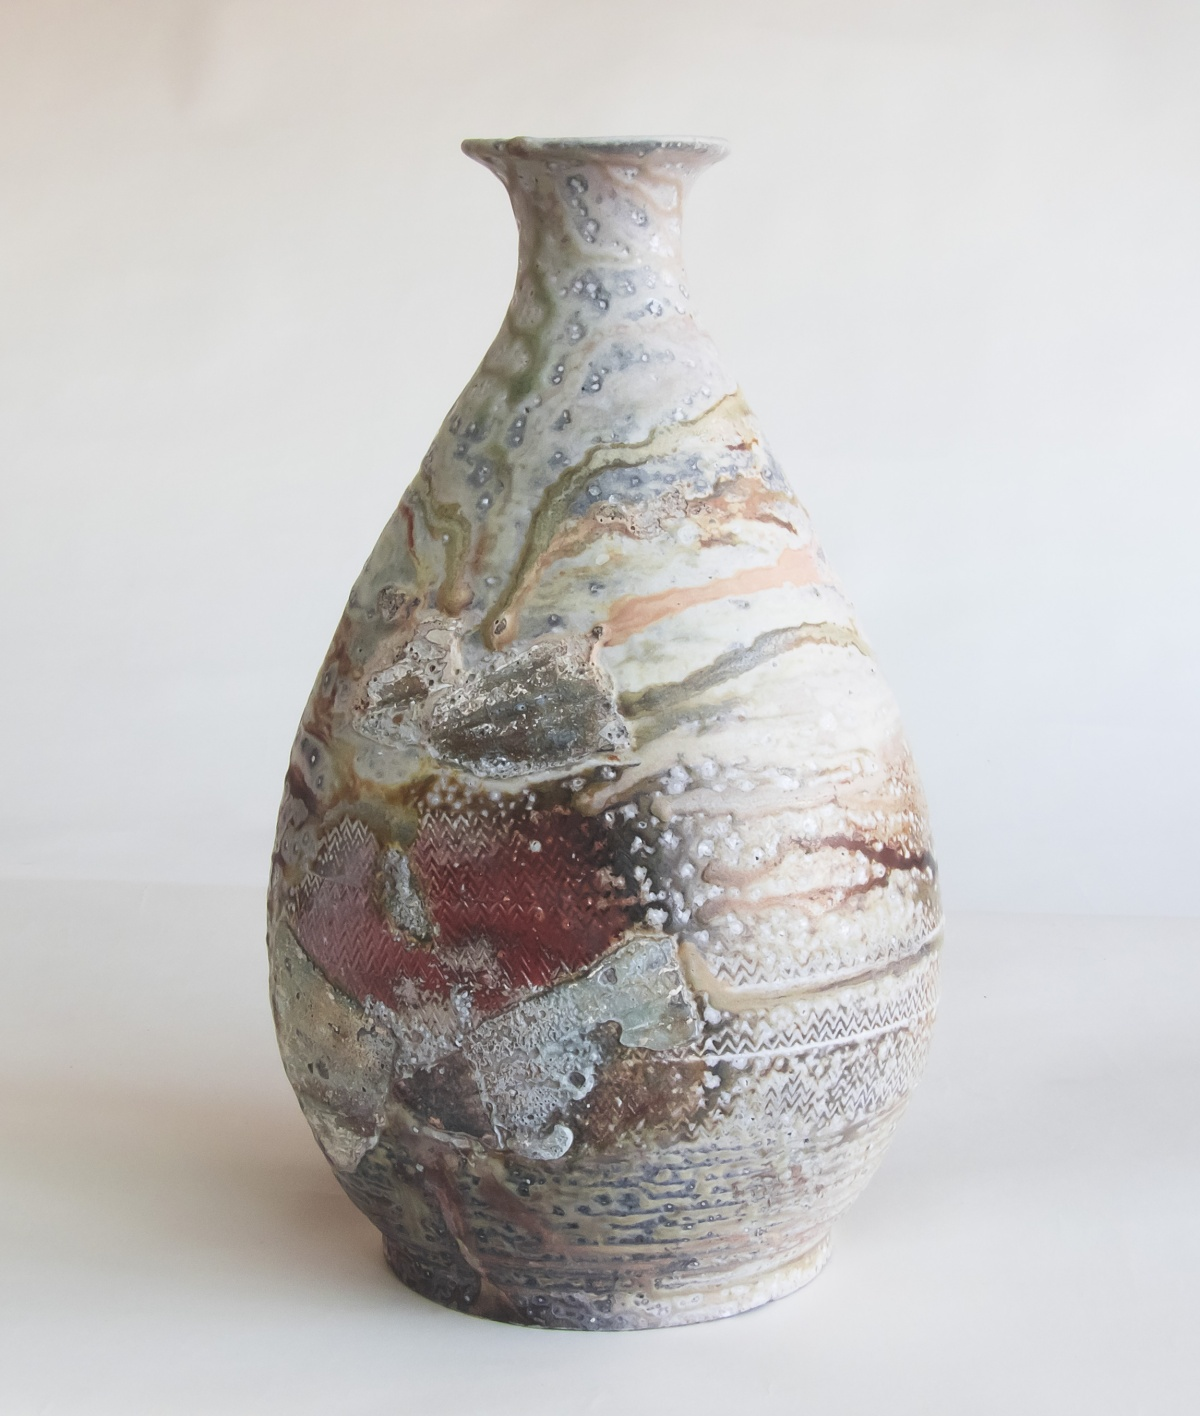 Made room for 2 lucky individuals if you want to learn about wood firing and join some fantastic folks building a wood kiln with Markus Boehm June 21-30